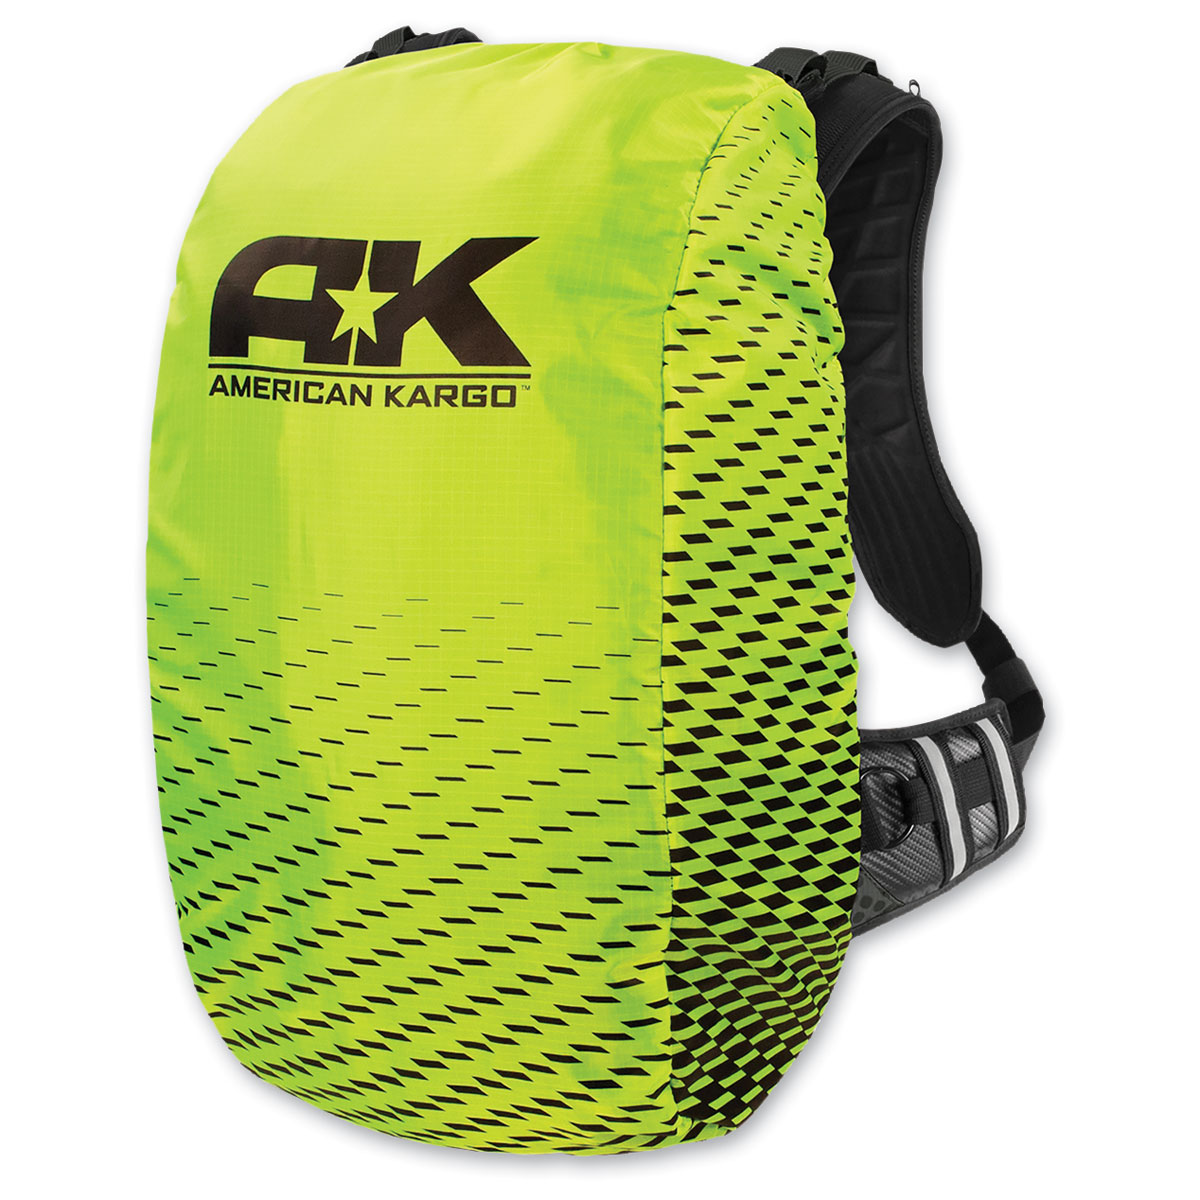 American Kargo Trooper Backpack Raincover Hi-Viz